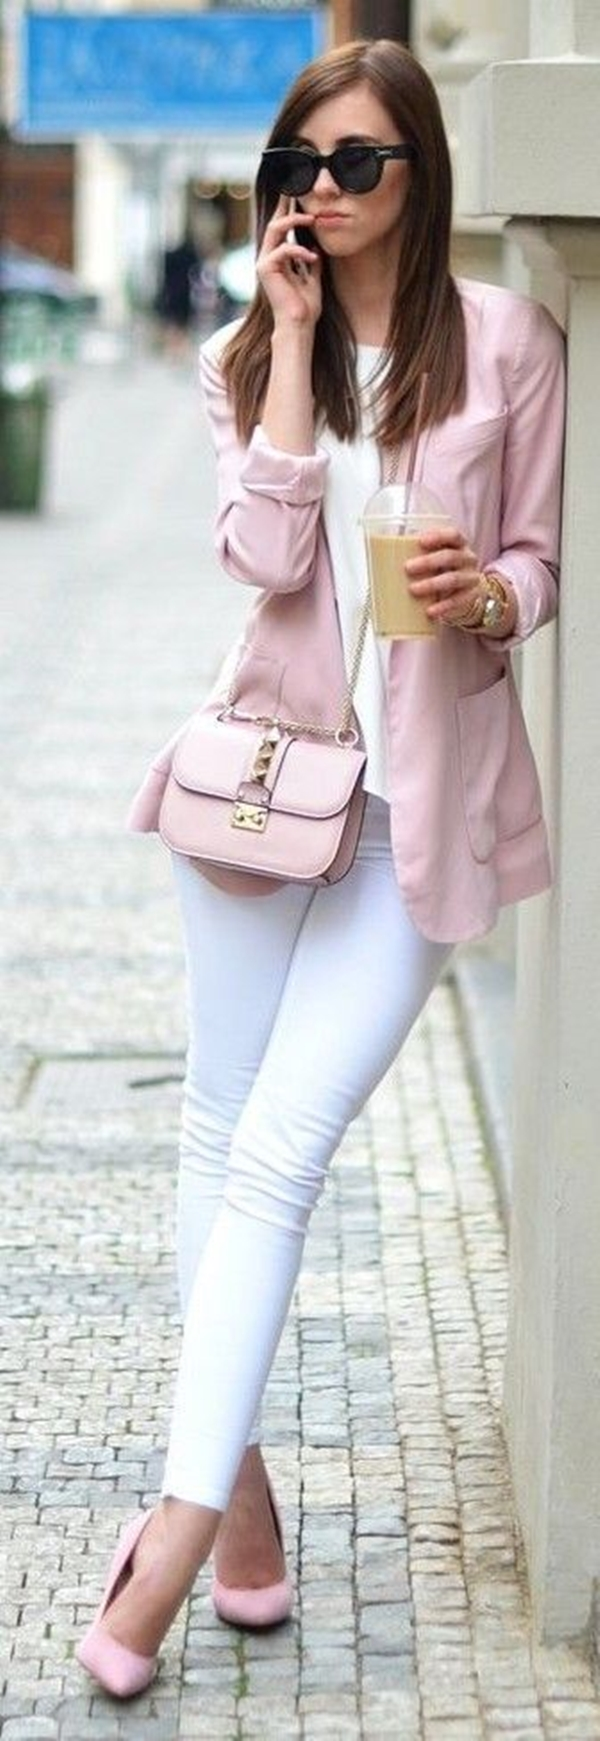 outfits-with-blazer-for-office-women-34